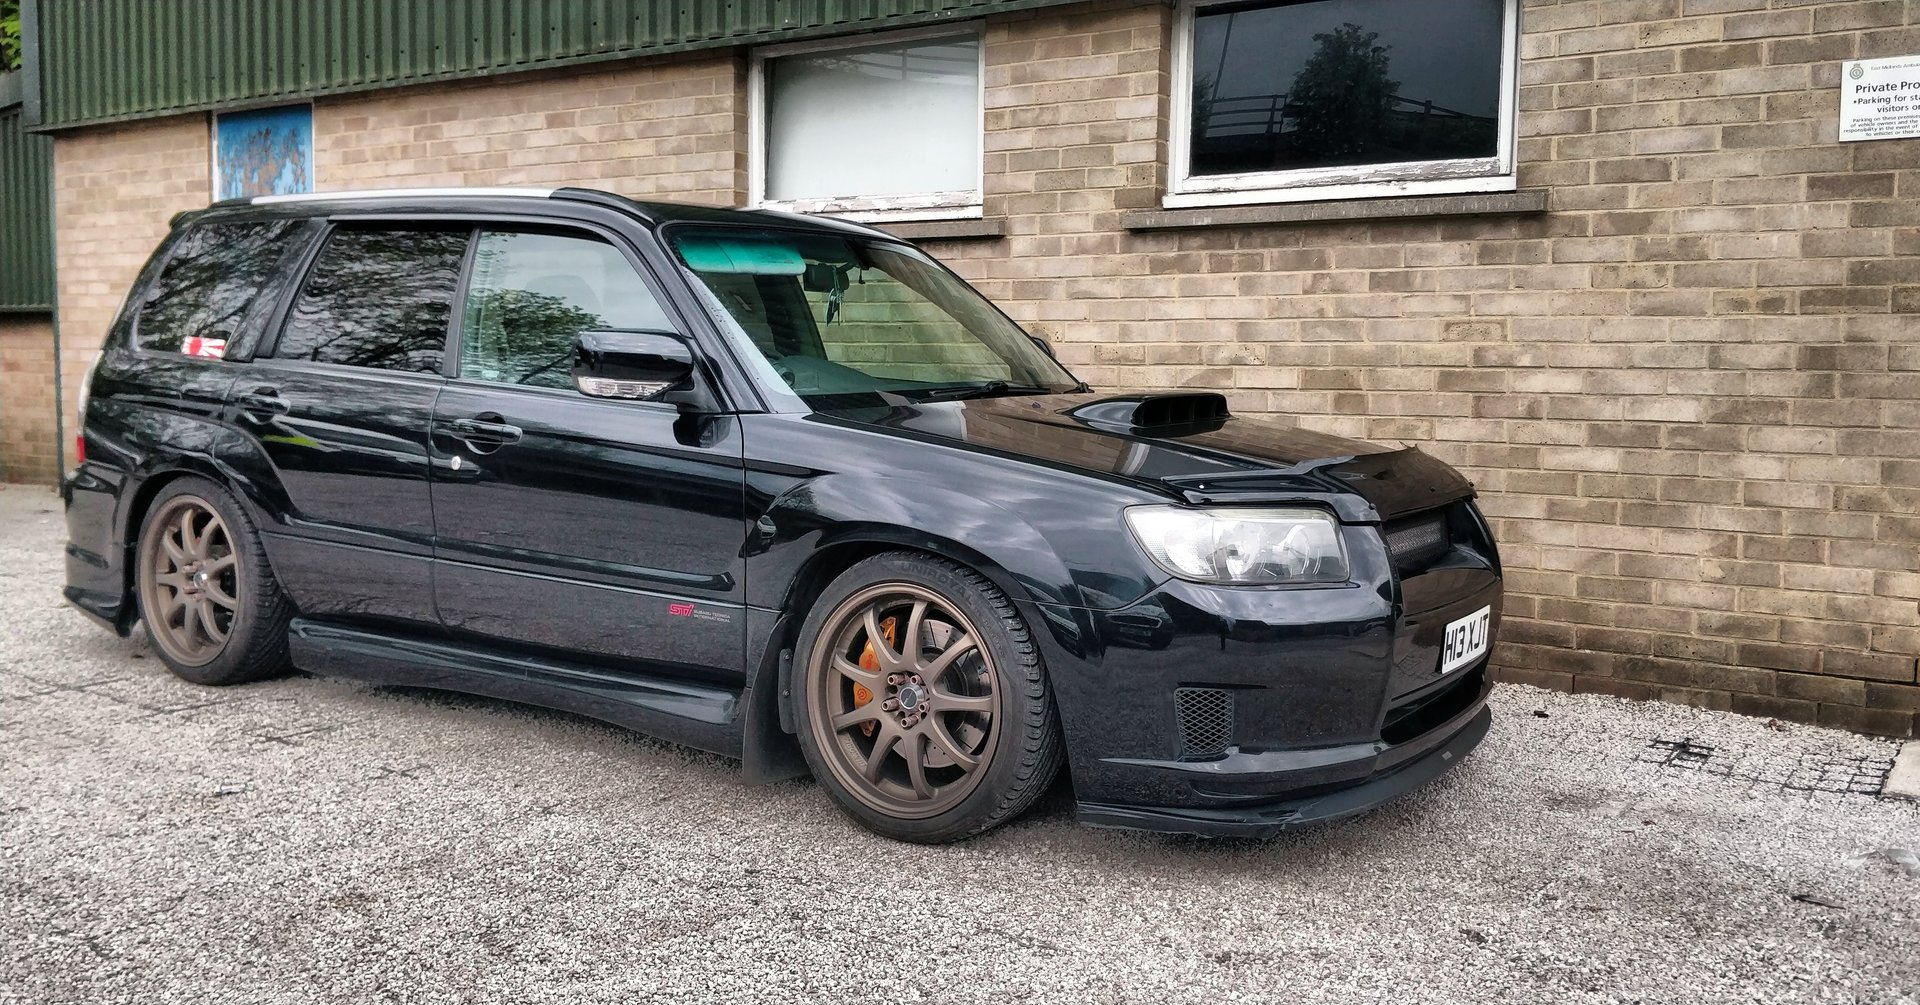 Sti For Sale >> For Sale - 2006 Subaru Forester STI JDM Import 304BHP SG9 2.5T FLAT4 LSD Diff | Driftworks Forum